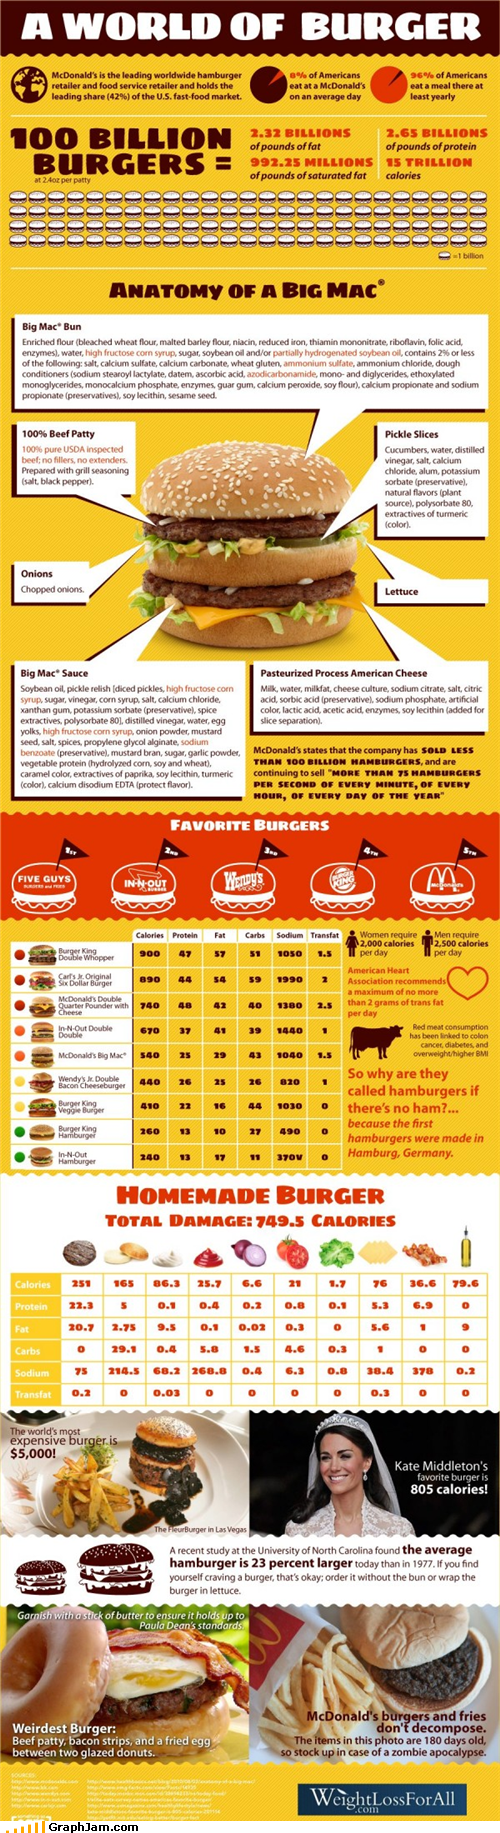 burgers calories gross hamburgers infographic ingredients - 5050499584